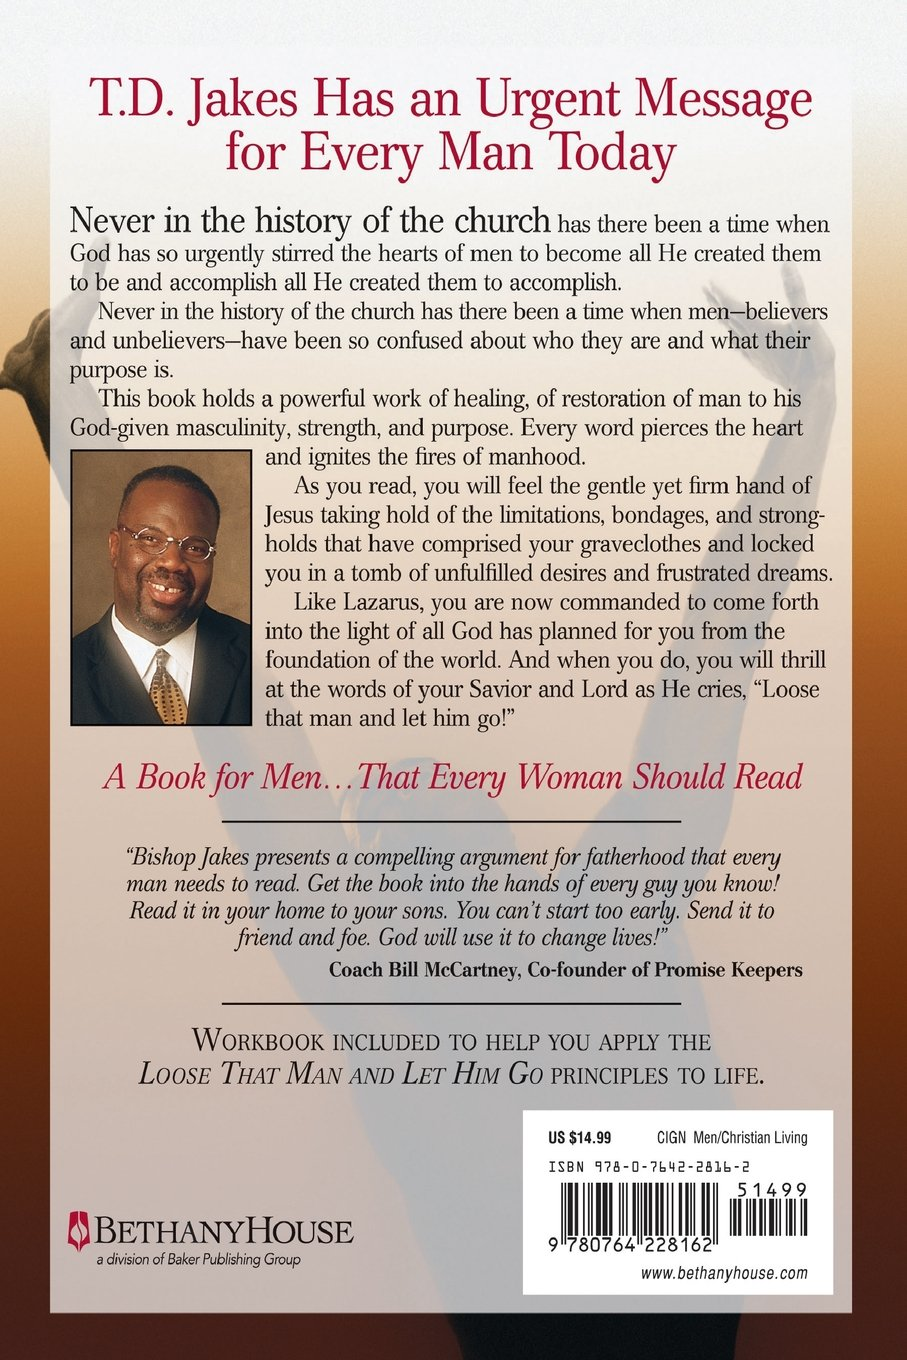 e-book Loose That Man and Let Him Go! with Workbook